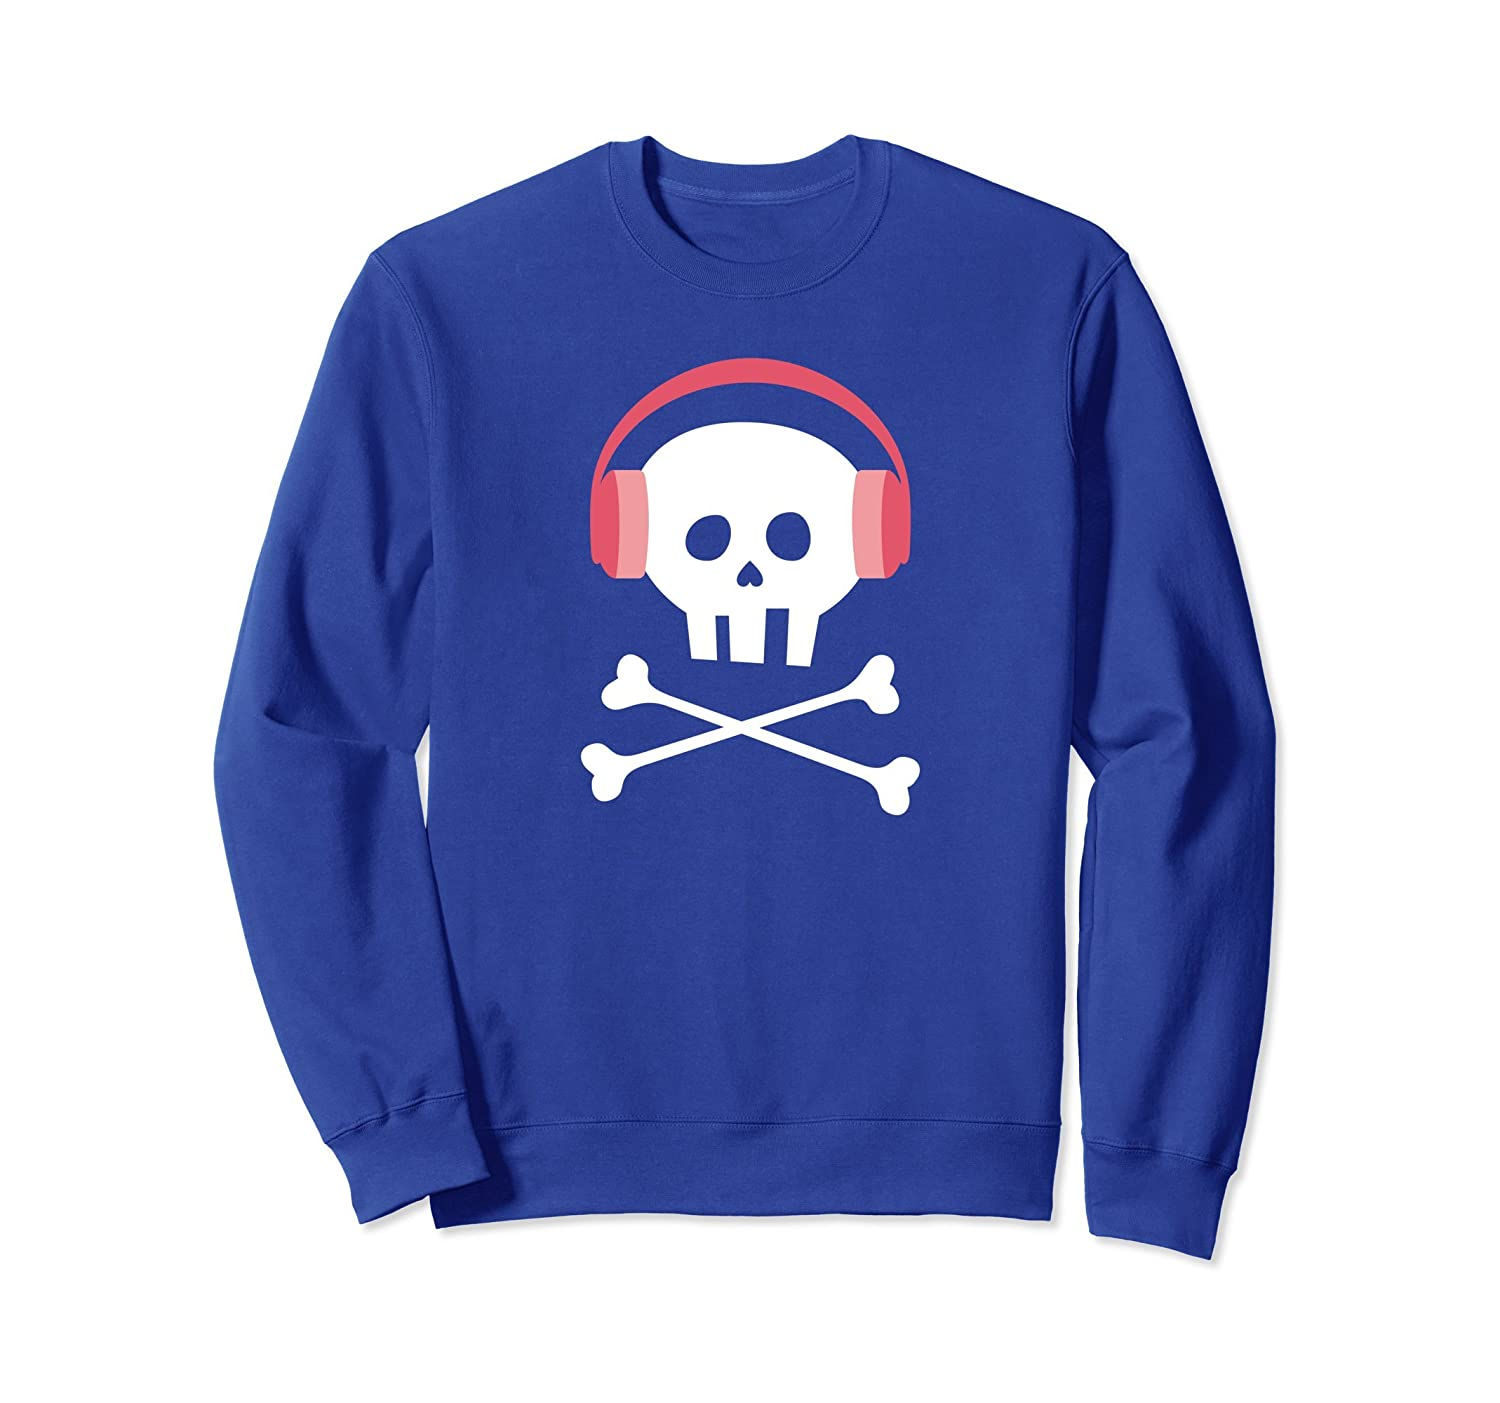 Cute Skull and Crossbones Sweatshirt for Girls and Women-mt